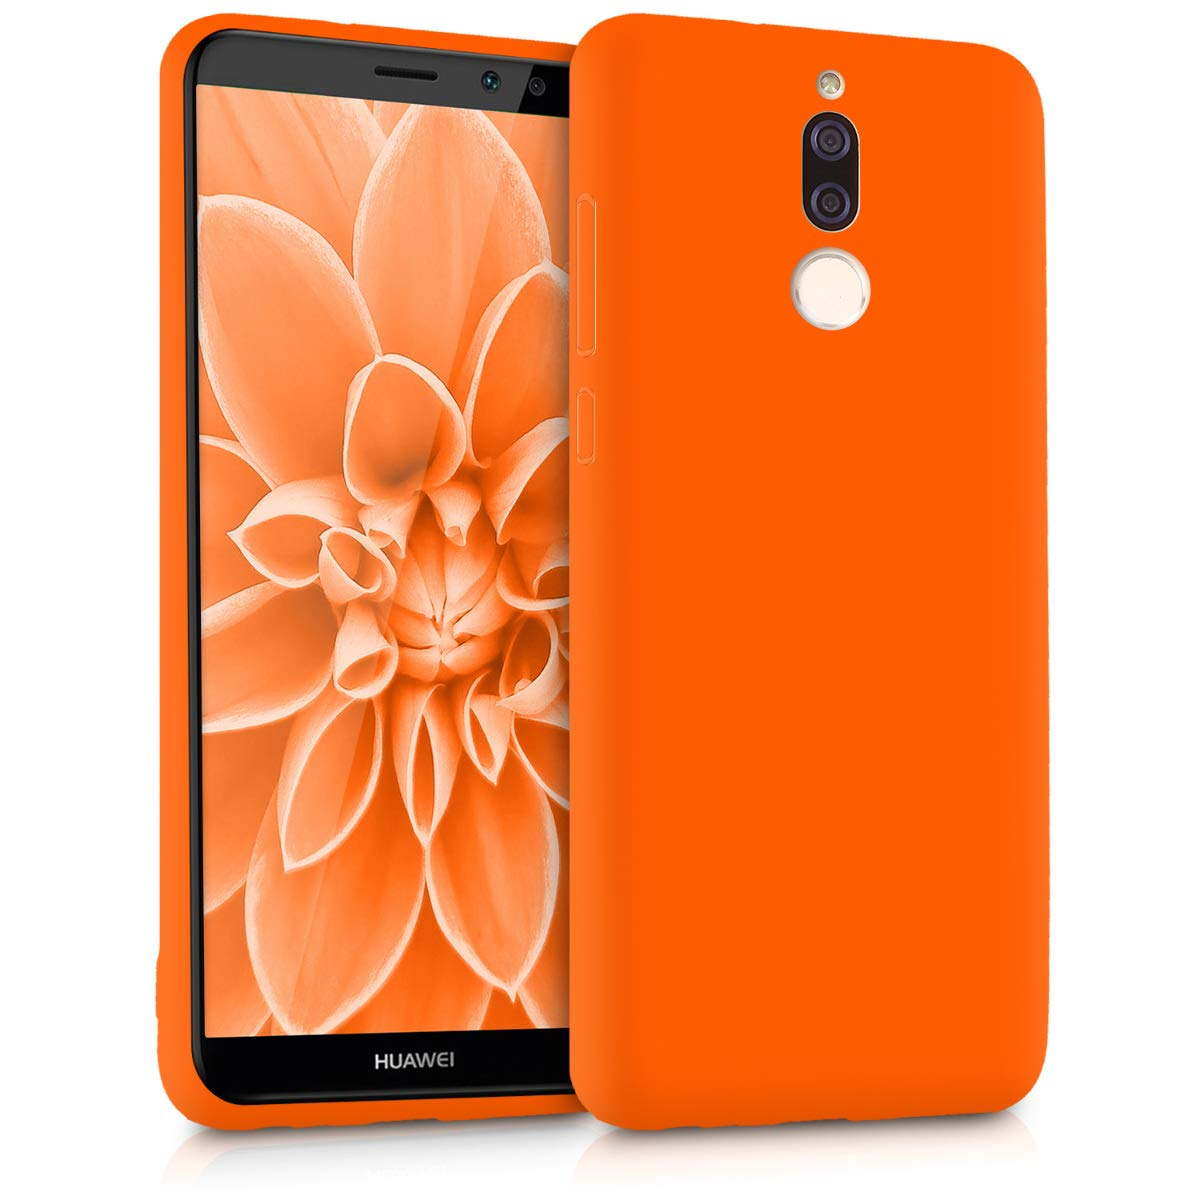 kwmobile TPU Silicone Case Compatible with Huawei Mate 10 Lite - Soft Flexible Protective Phone Cover - Neon Orange